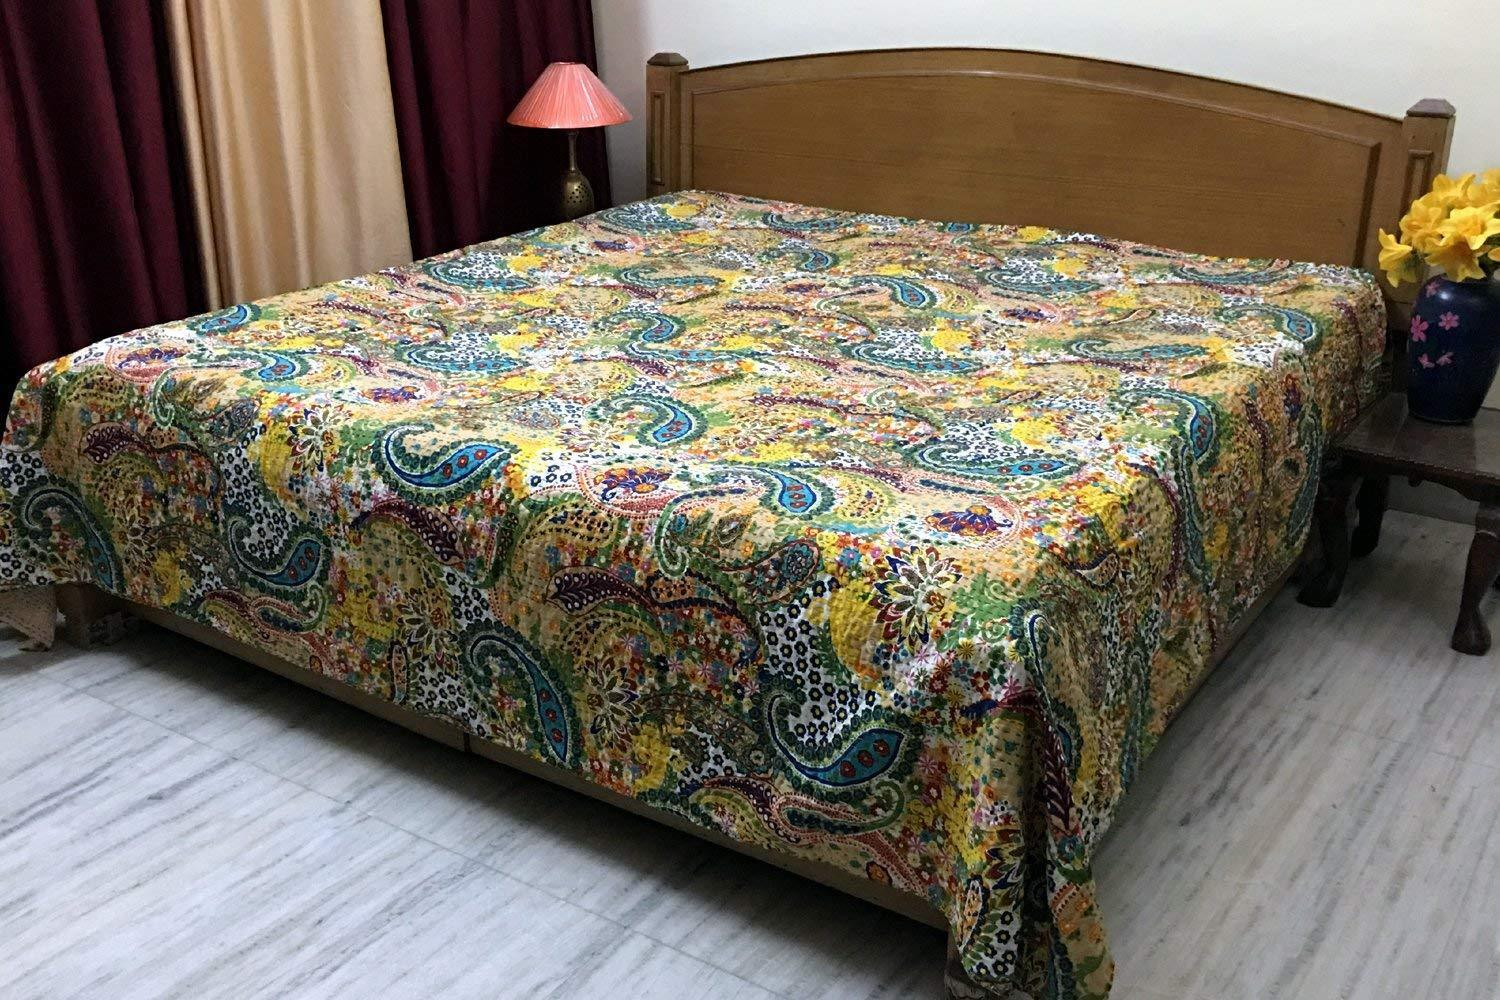 Indian Bed Cover Queen Cotton Printed Quilt Blanket Paisley Kantha Quilts